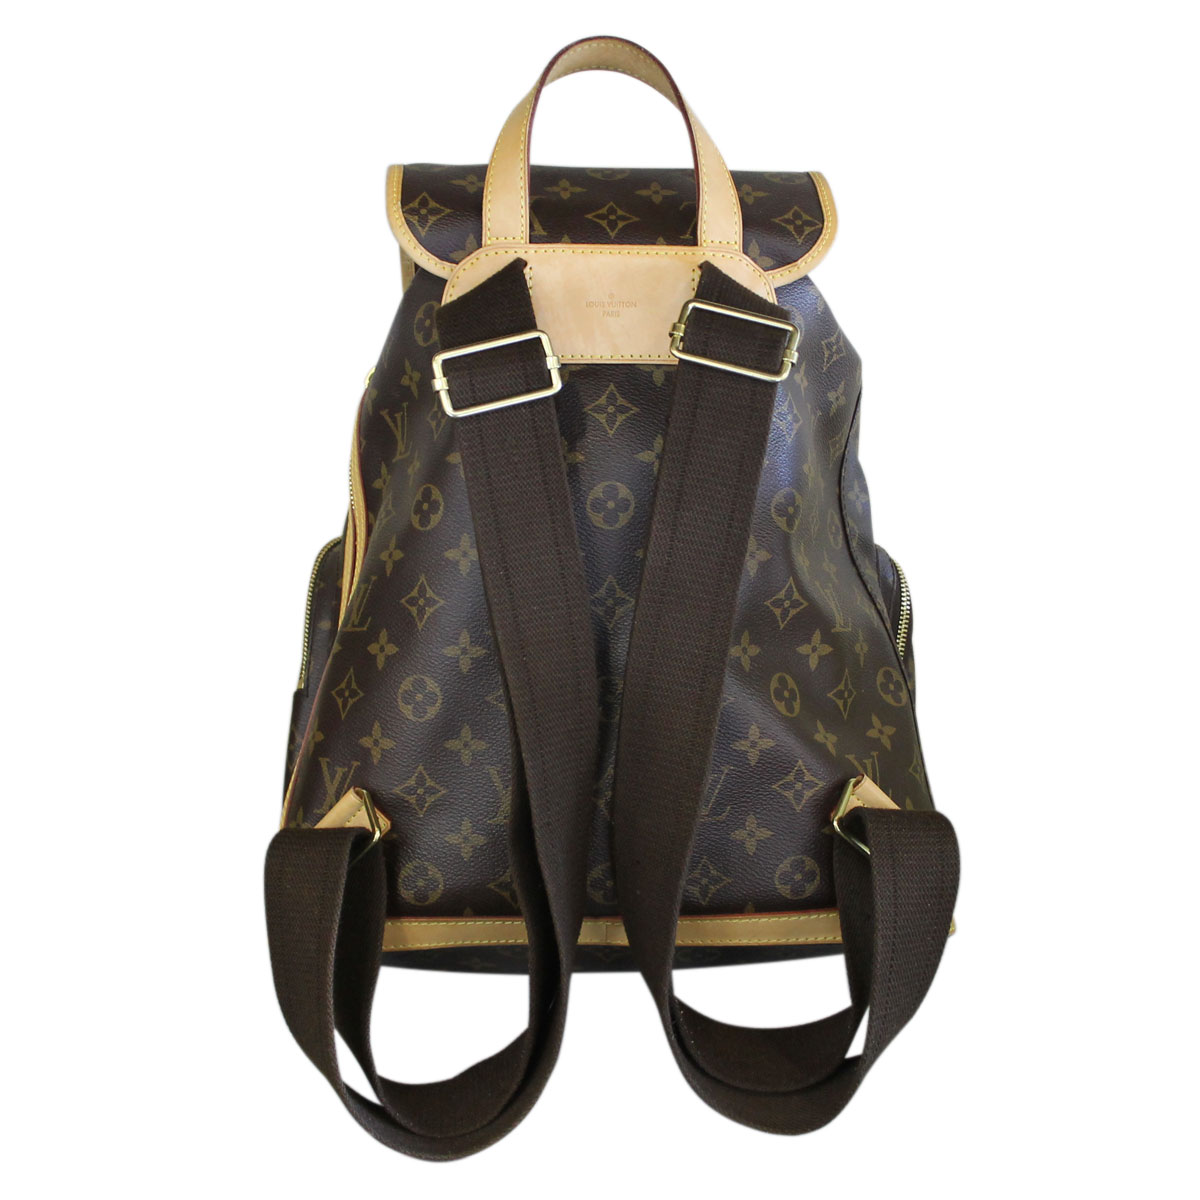 louis vuitton sac a dos bosphore monogram backpack. Black Bedroom Furniture Sets. Home Design Ideas